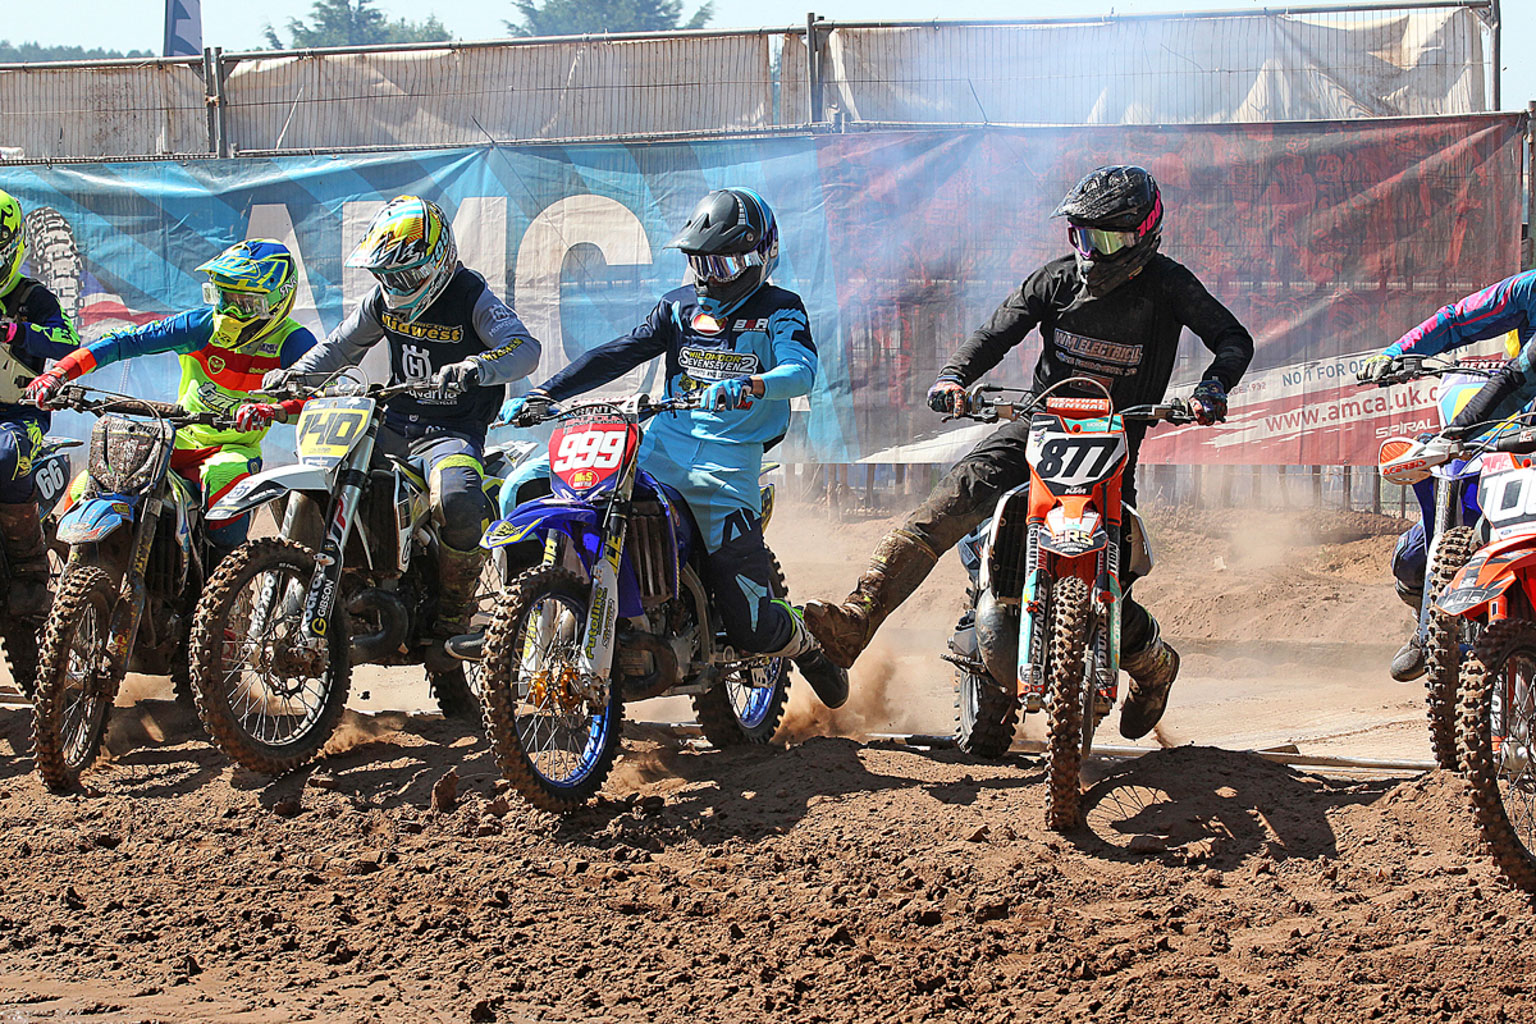 2c3b94af4fa All change as AMCA title race hots up. AMCA · MOTOCROSS NEWS EXTRA